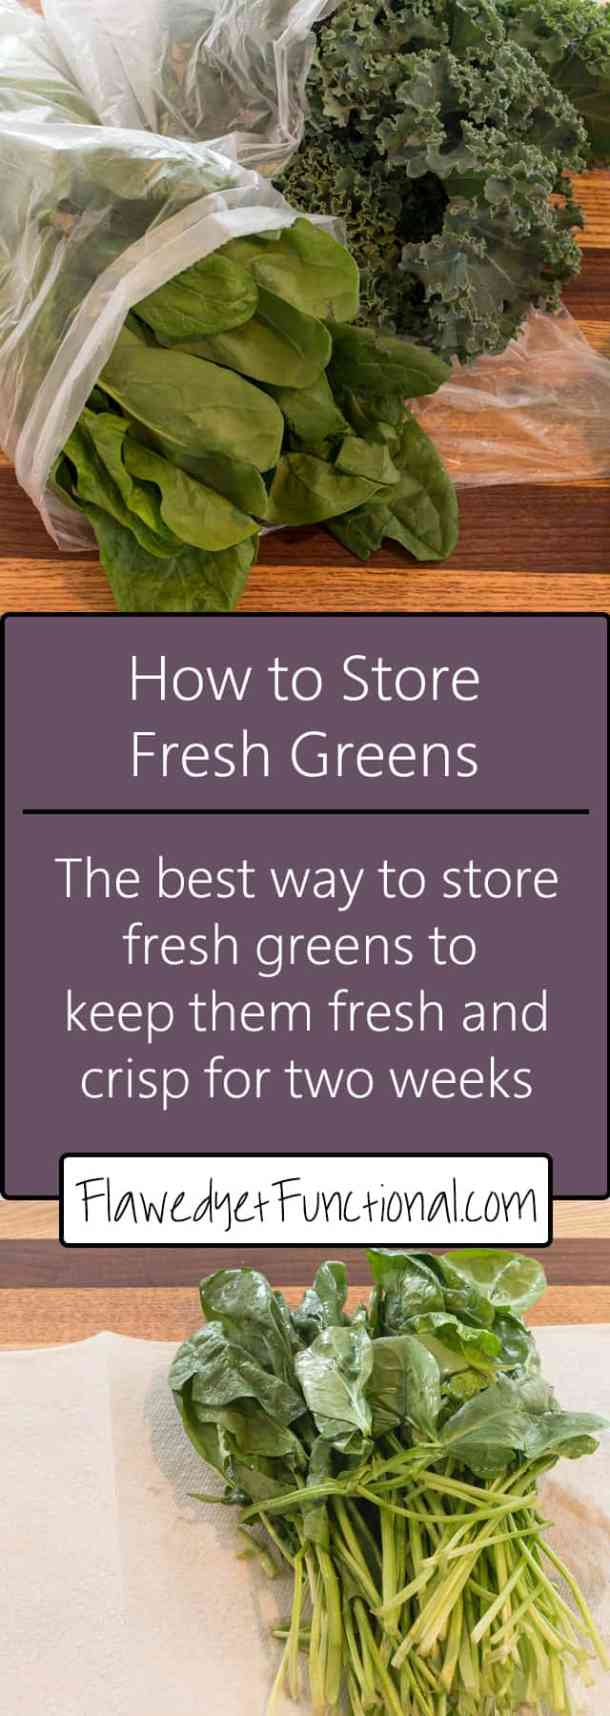 How to Store Fresh Greens